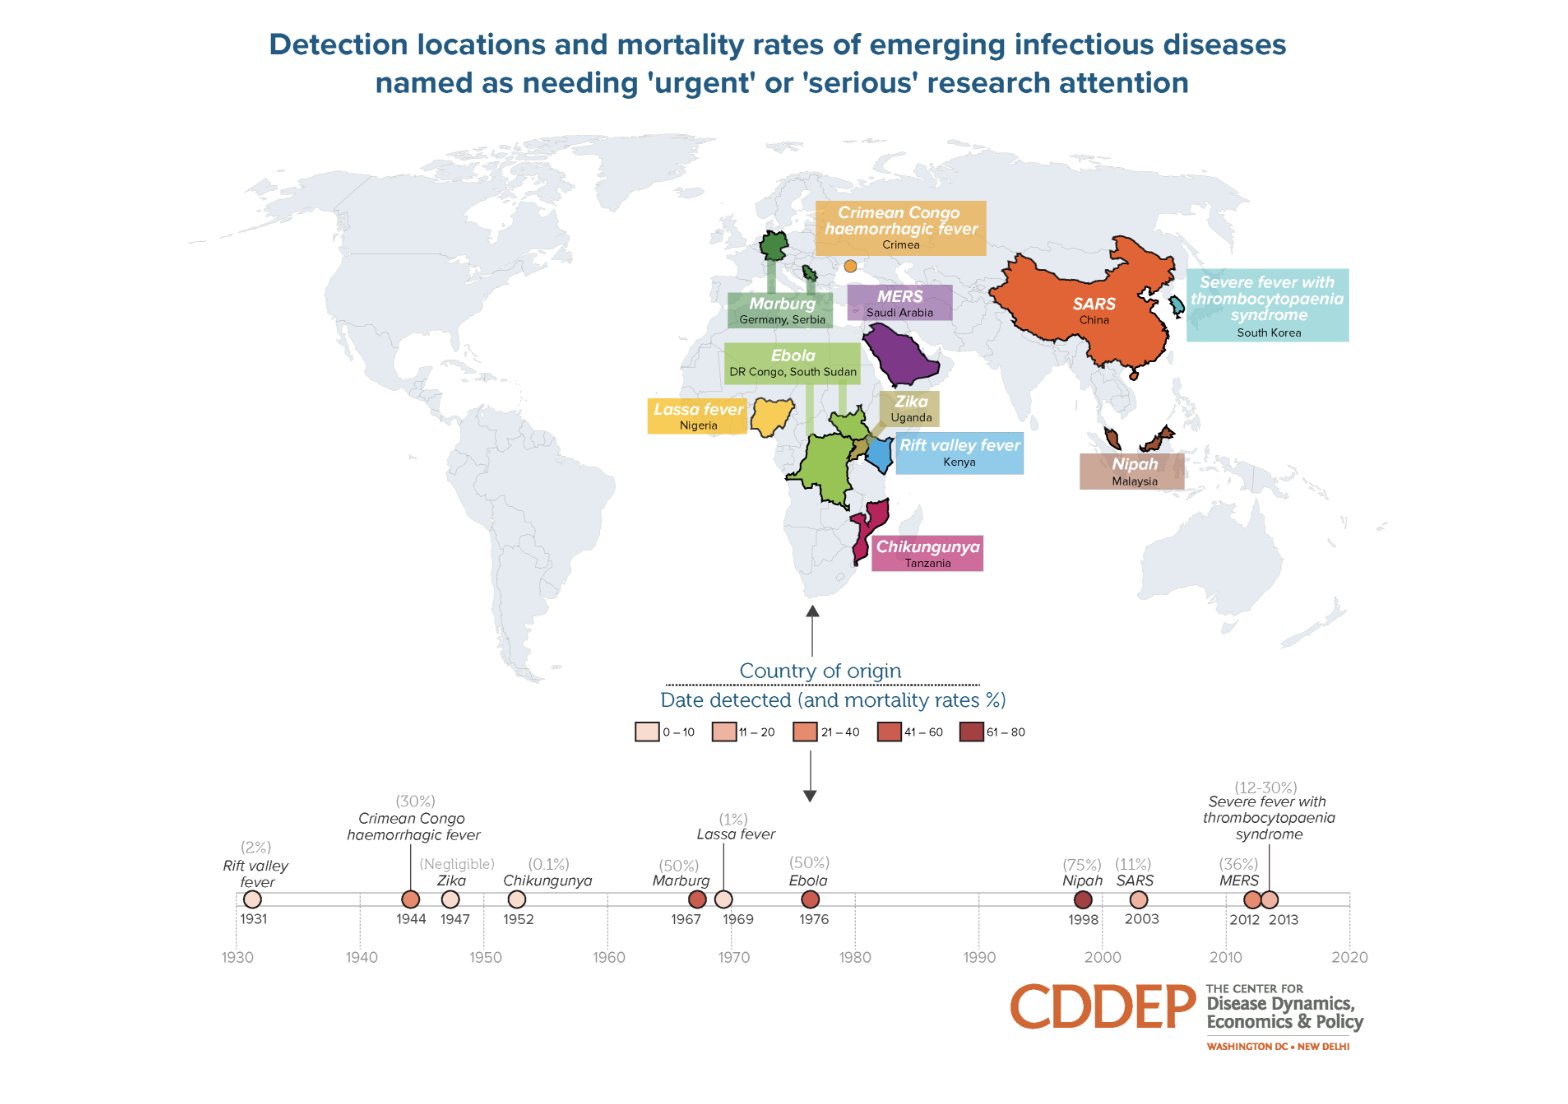 The costs of epidemics are going down but the economic ... on who sars 2003 june spreading map, biological weapons casualties map, the global spread of buddhism map,